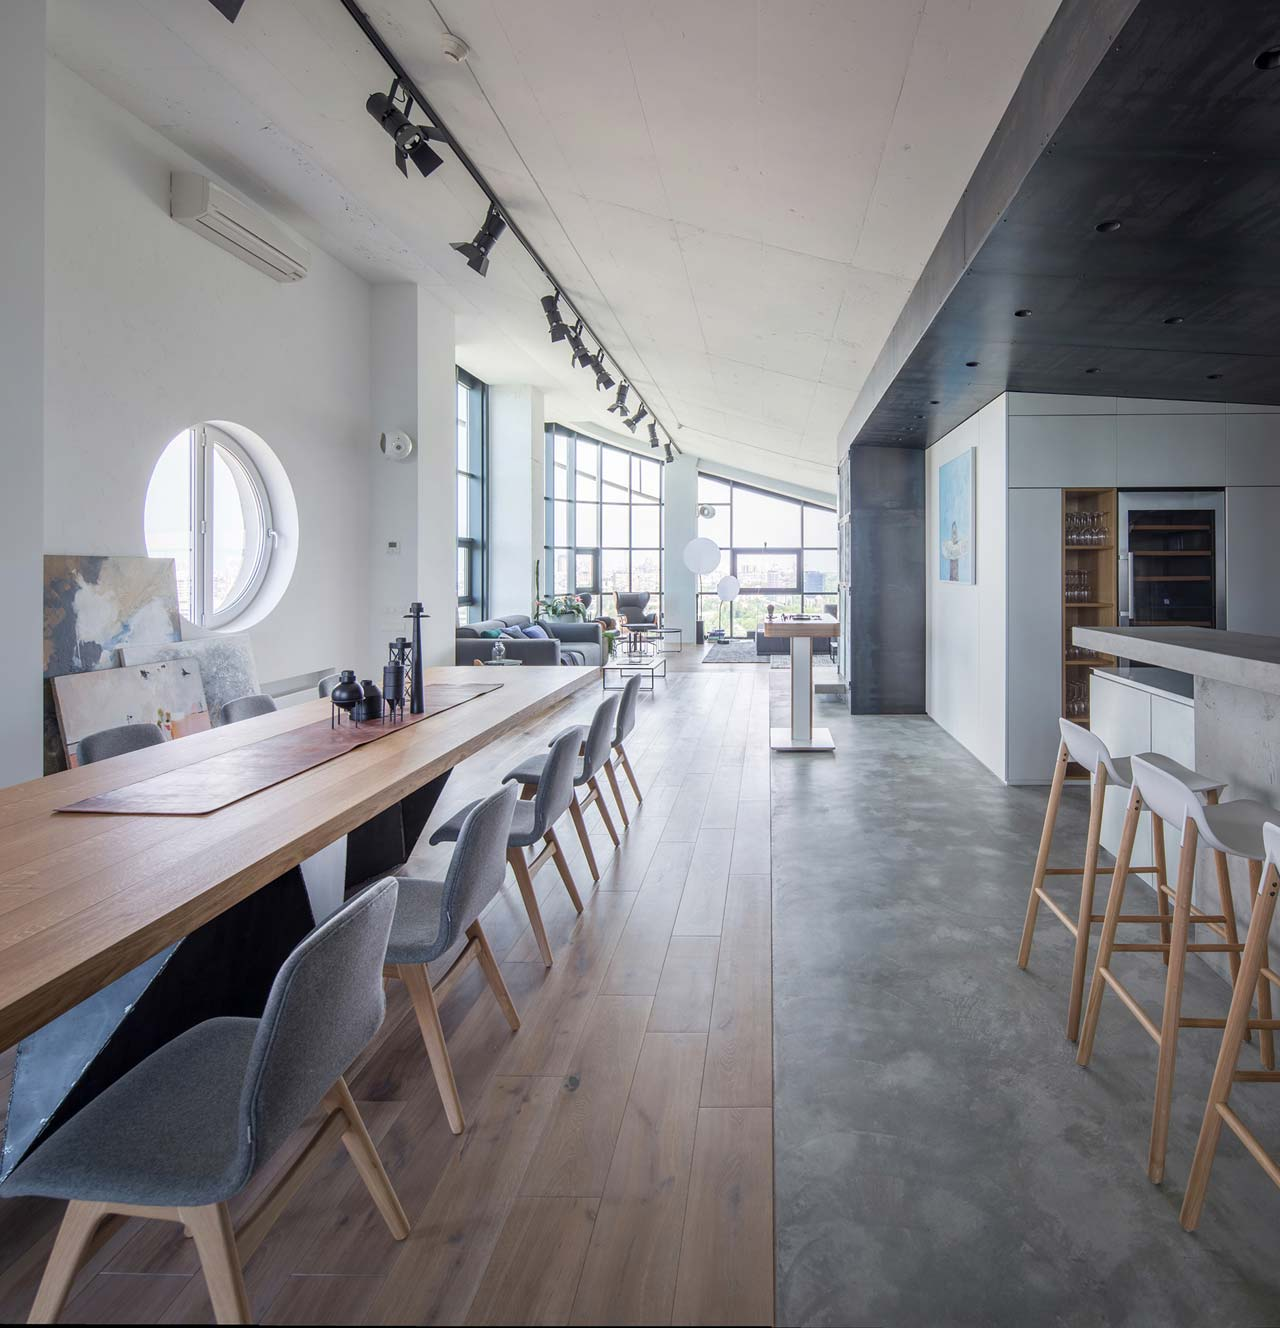 A Former Equipment Room Is Converted into a Penthouse Apartment in Kiev